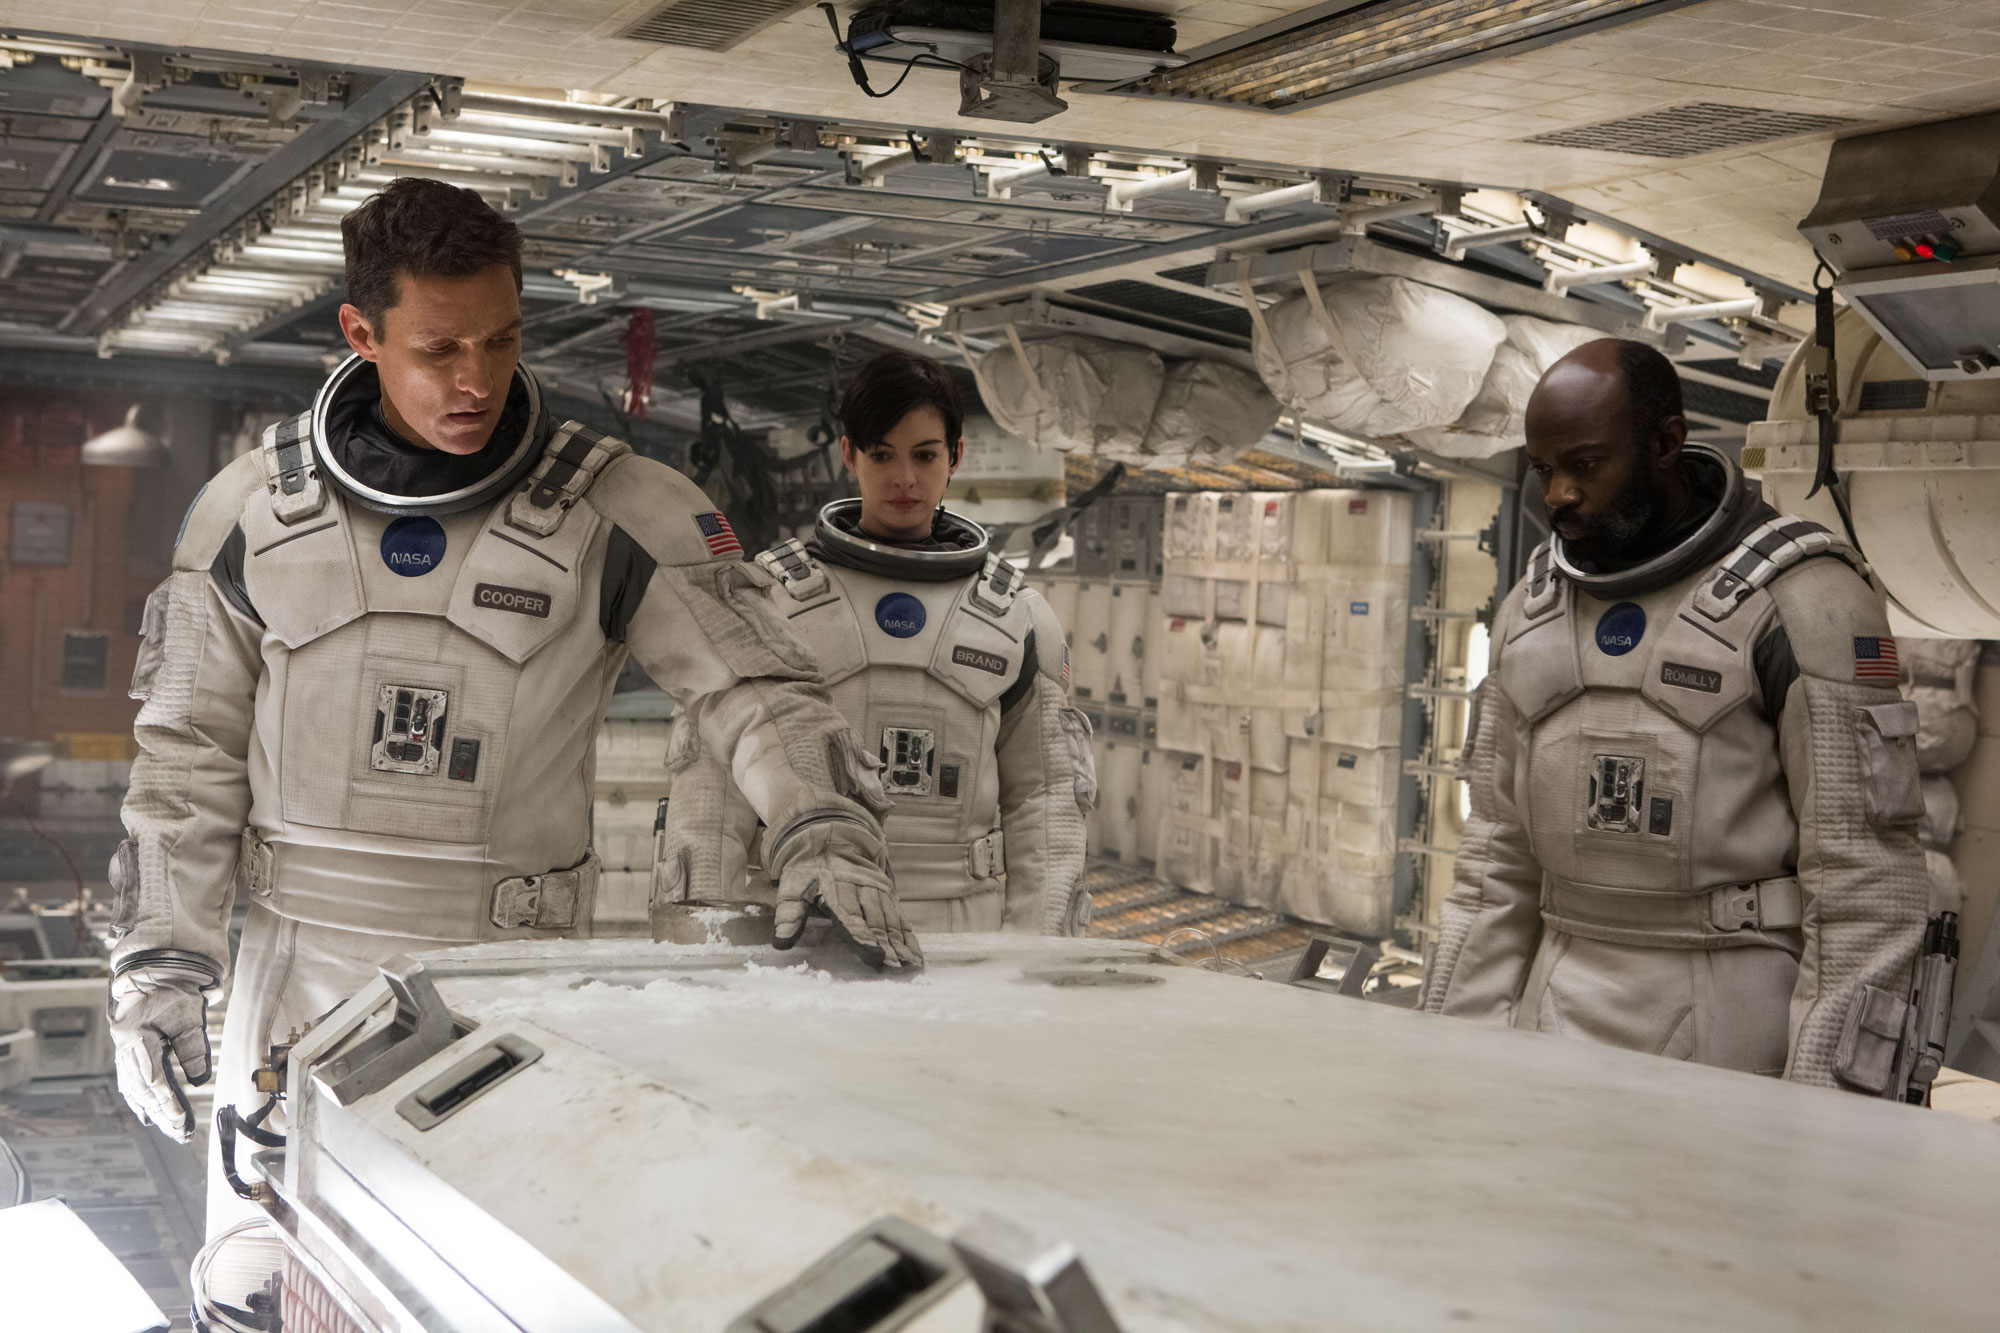 http://www.interstellarmovie.net/images/gallery/FL-28717.jpg